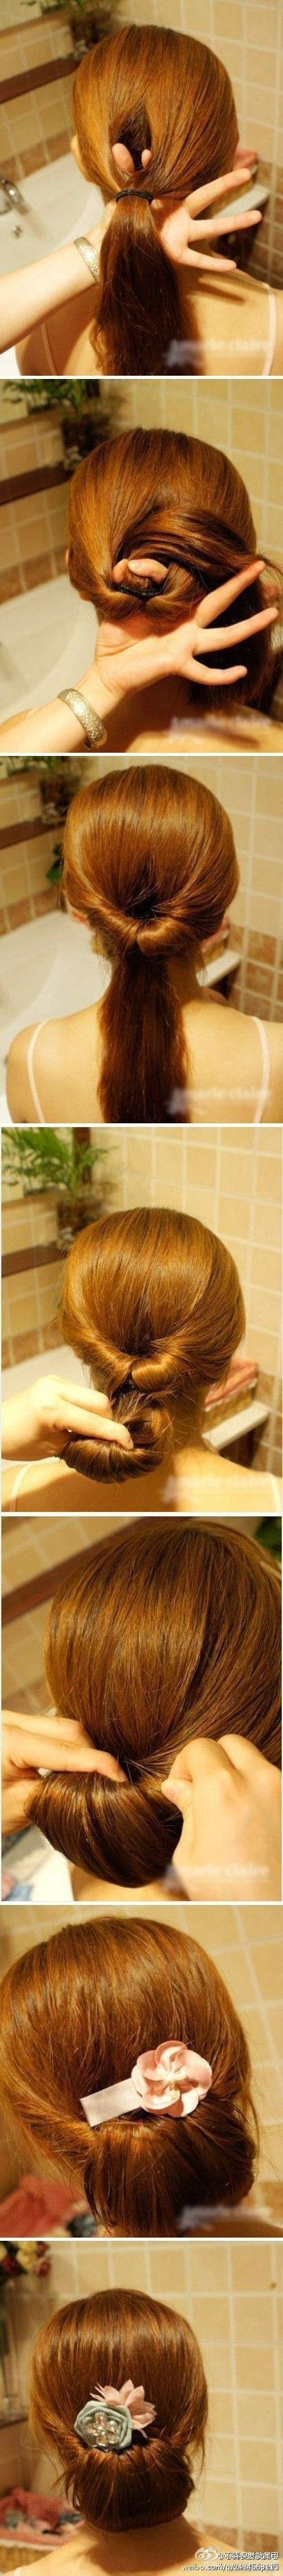 easy hair: Hair Ideas, Wedding Hair, Long Hair, Hairstyle, Hair Style, Ponies Tail, Updo, Hair Buns, Low Buns